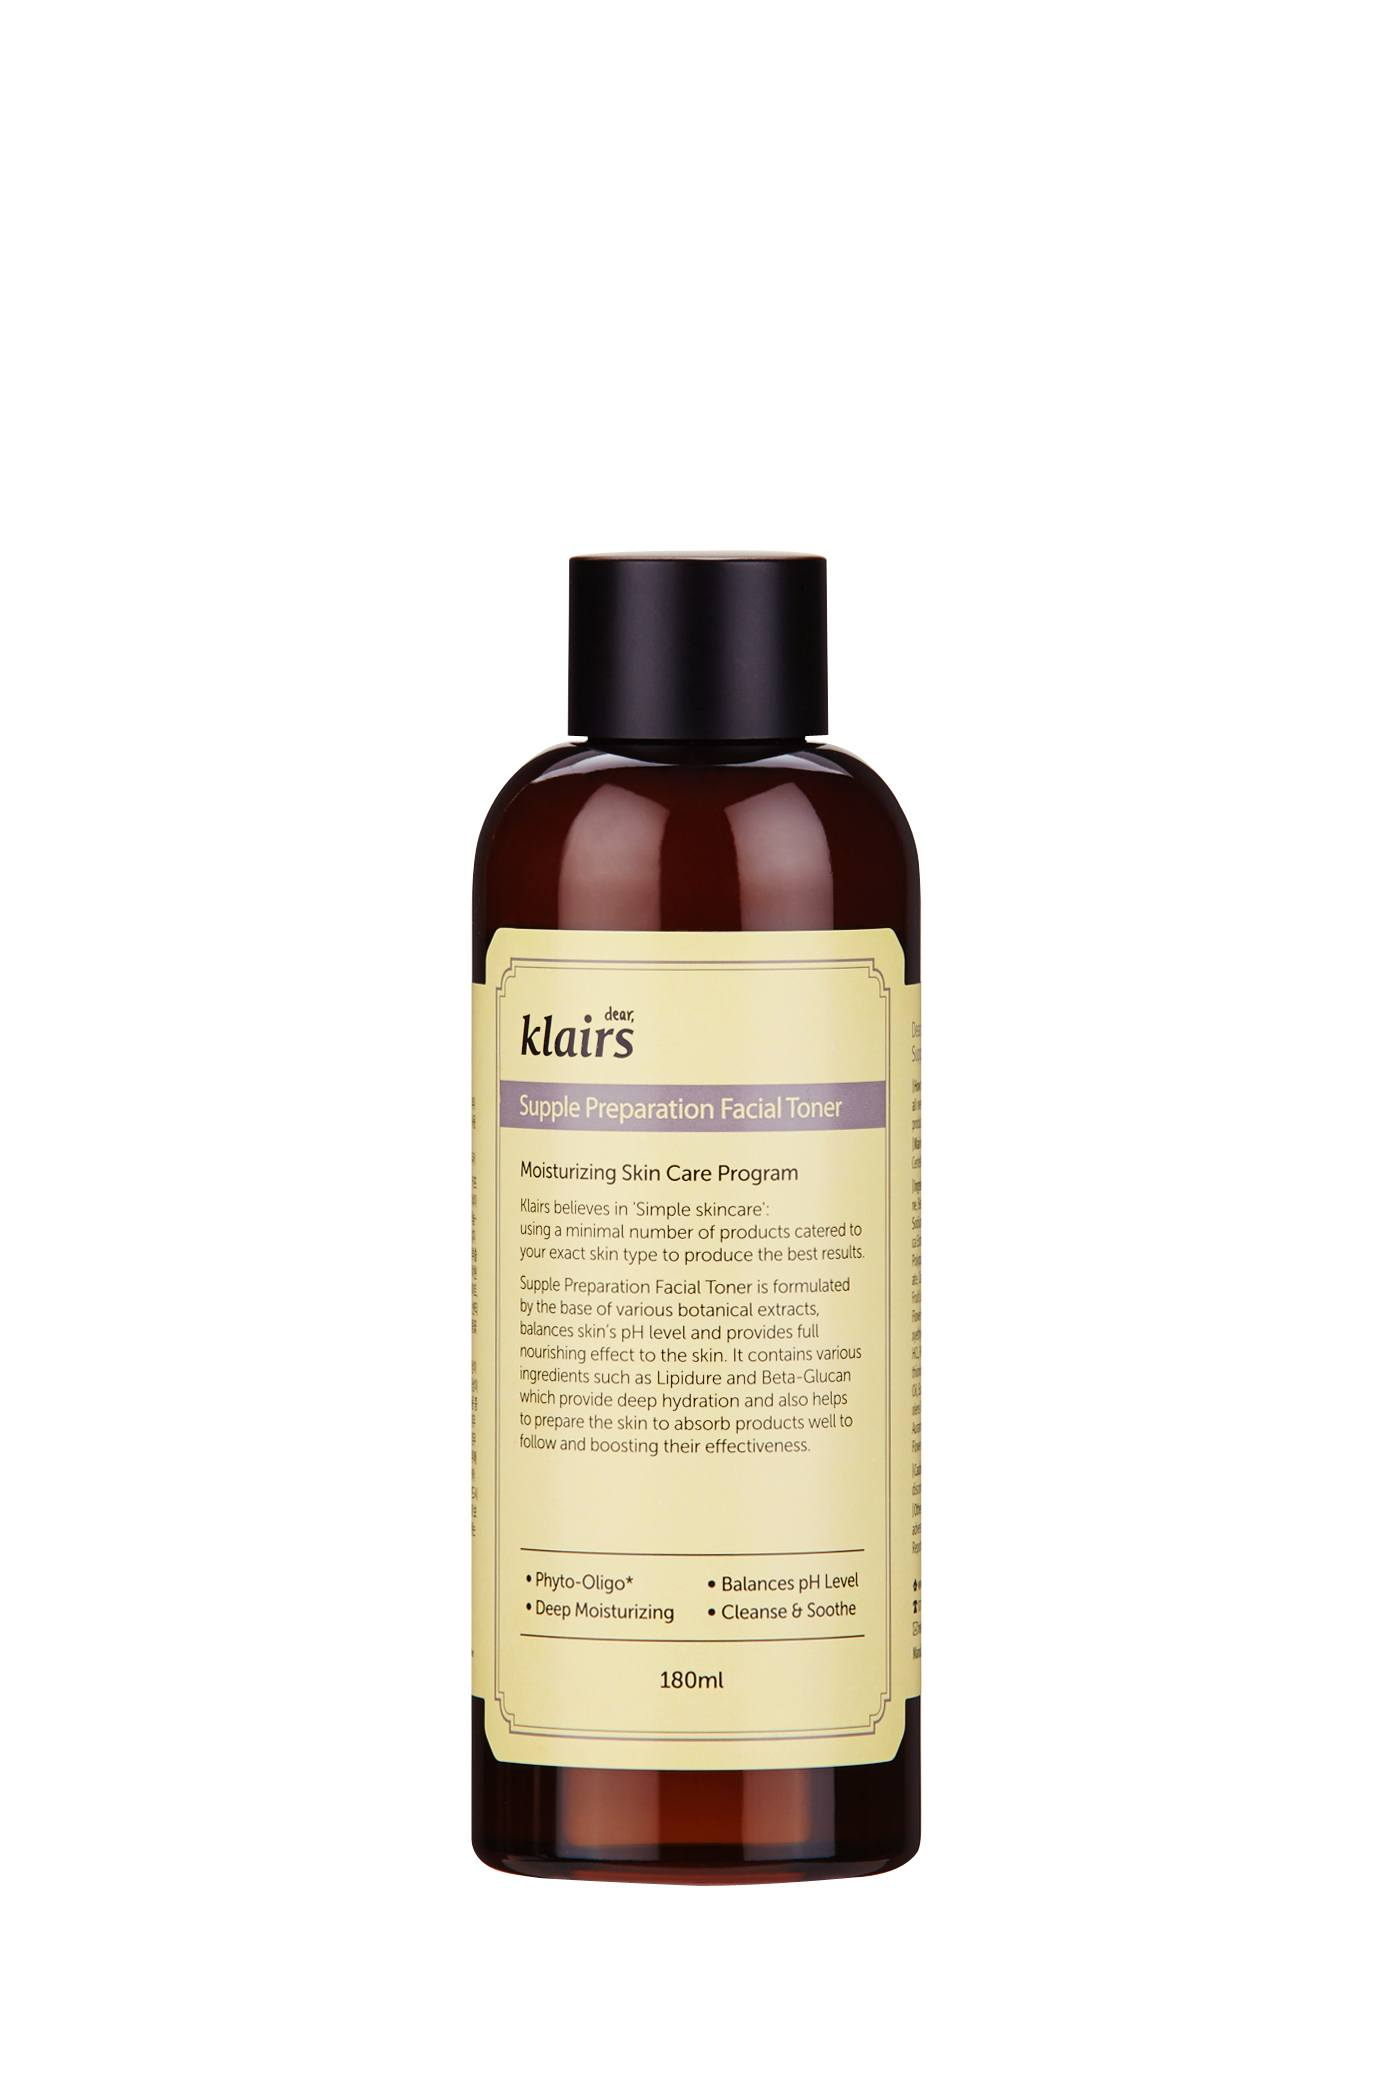 Health & Beauty > Personal Care > Cosmetics > Skin Care > Toners & Astringents > Toners - Supple Preparation Facial Toner - Tonik 180 Ml